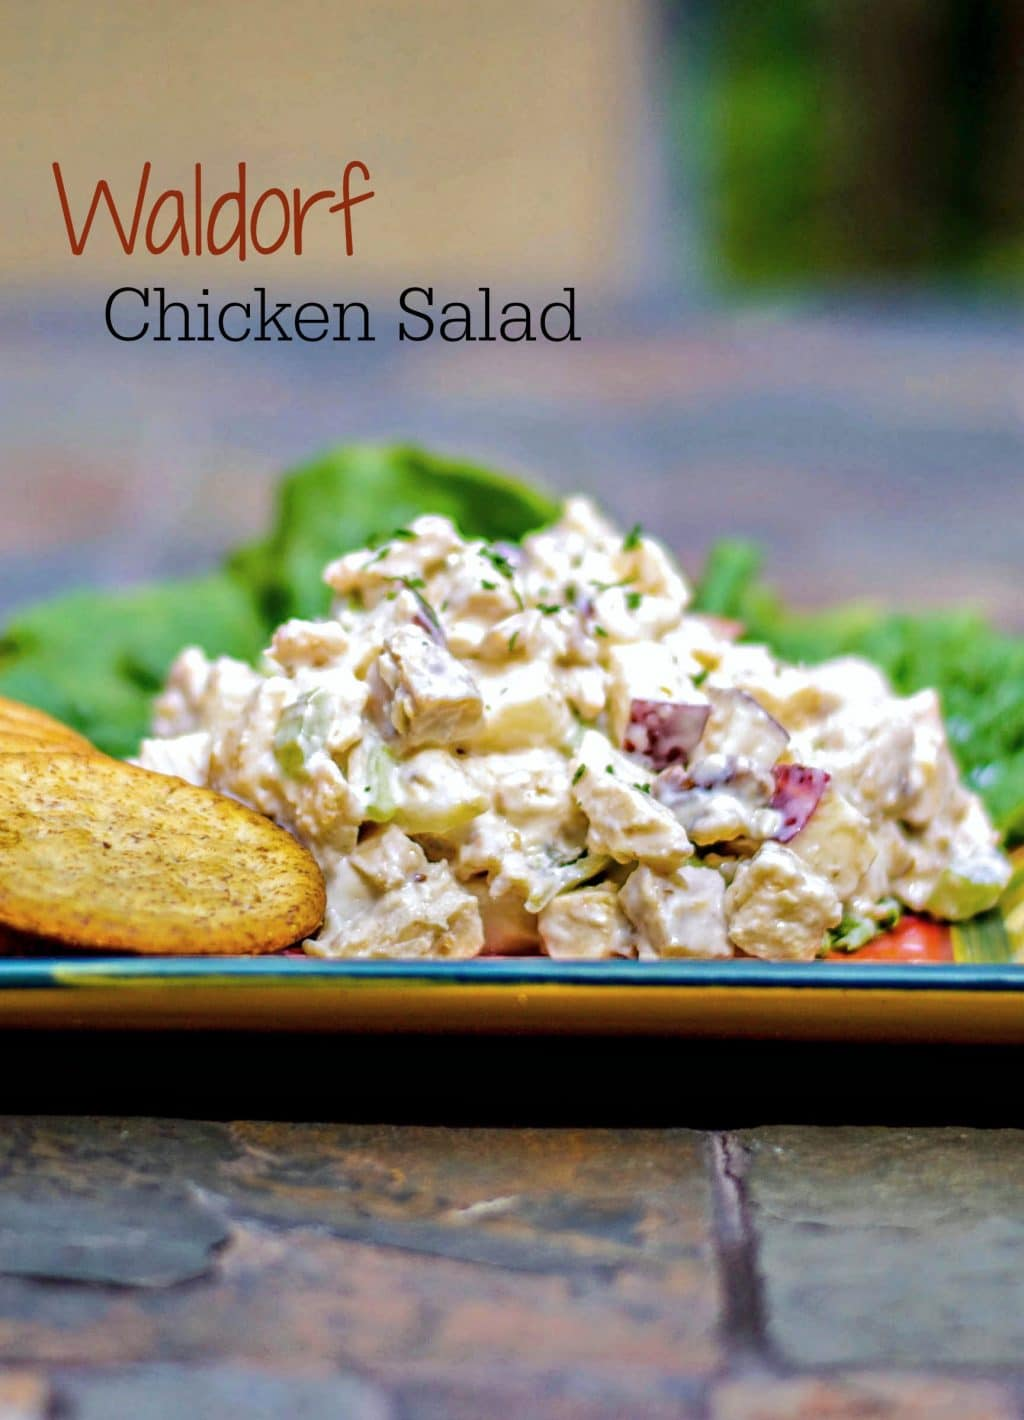 Waldorf Chicken Salad - Carrie's Experimental Kitchen